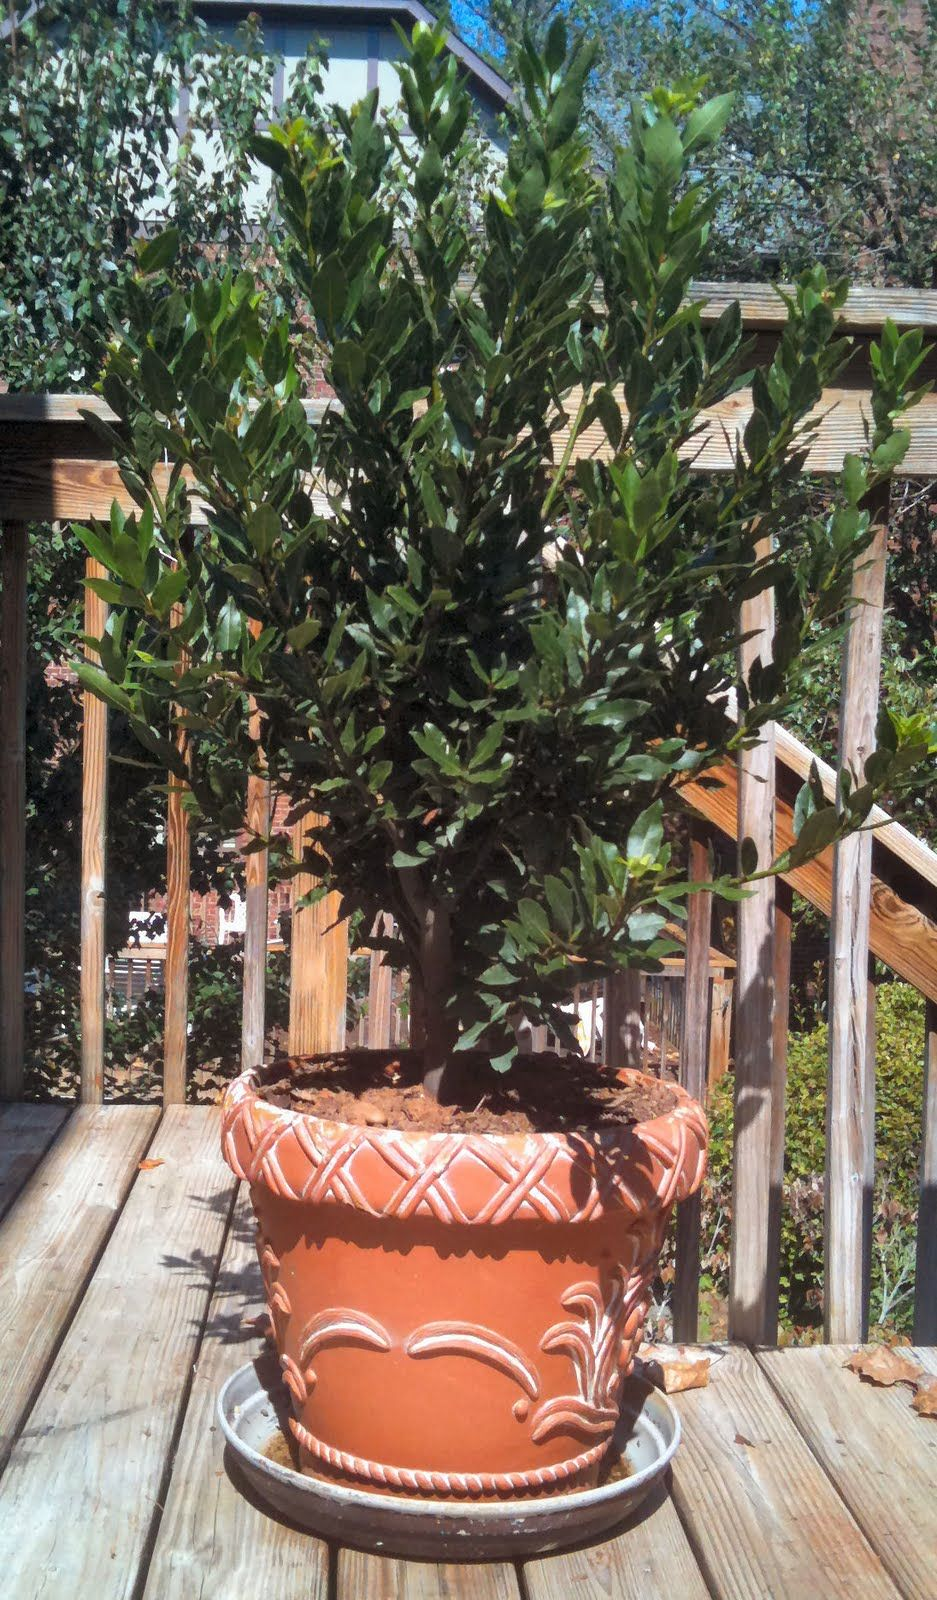 Ordinaire Great Patio Tree, Fragrant Leaves To Cook With! Easily Pruned Into Topiary.